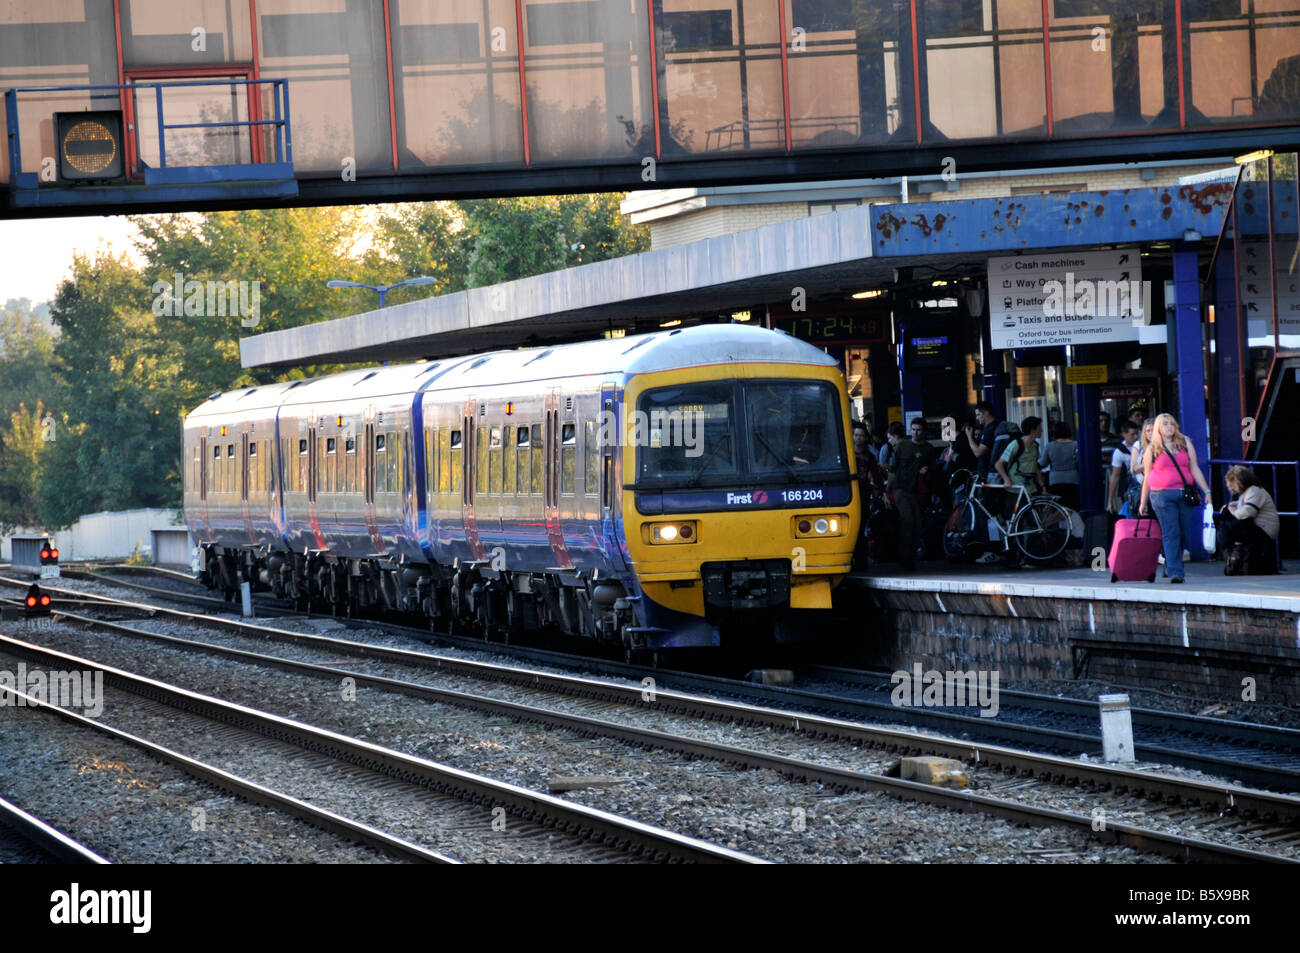 WSP Appointed For Major Oxford Railway Station Upgrade